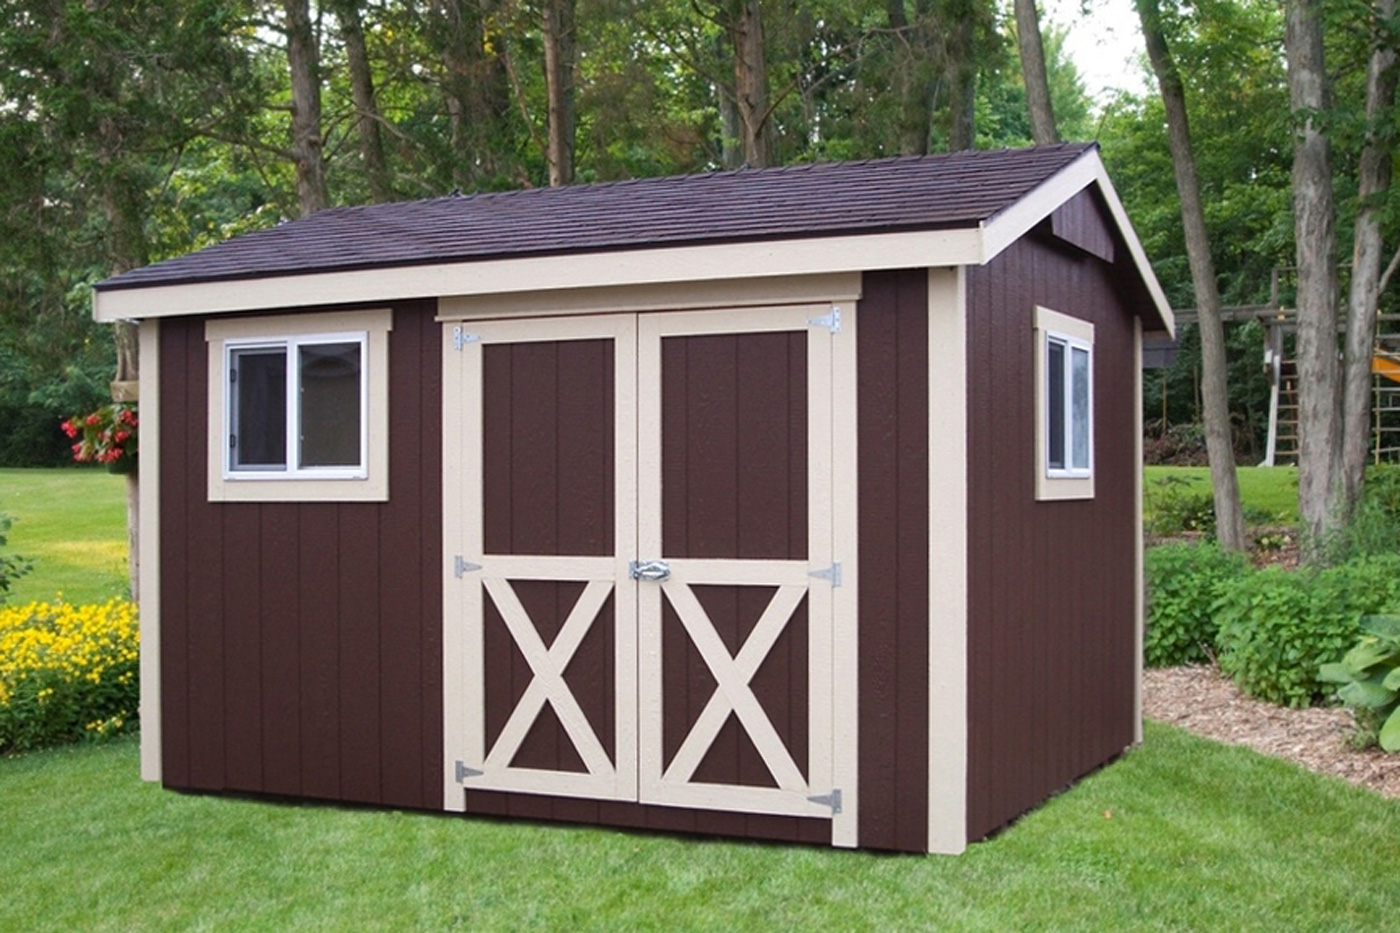 near me sheds storage eden prairie wisconsin garden minnesota steel for shed prices and sale in